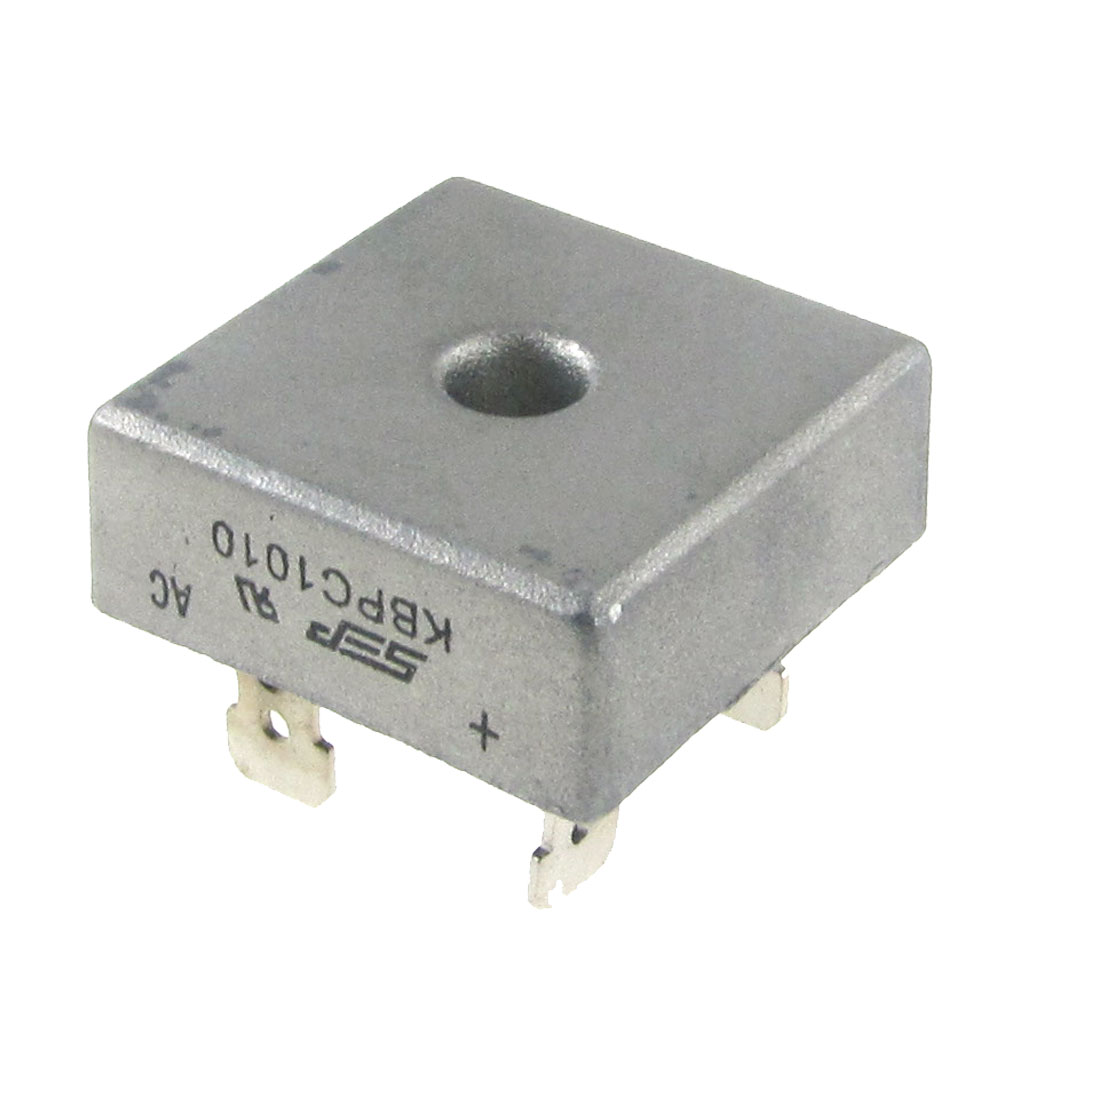 1000V 10A KBPC1010 Diode Single Phase Square Bridge Rectifier